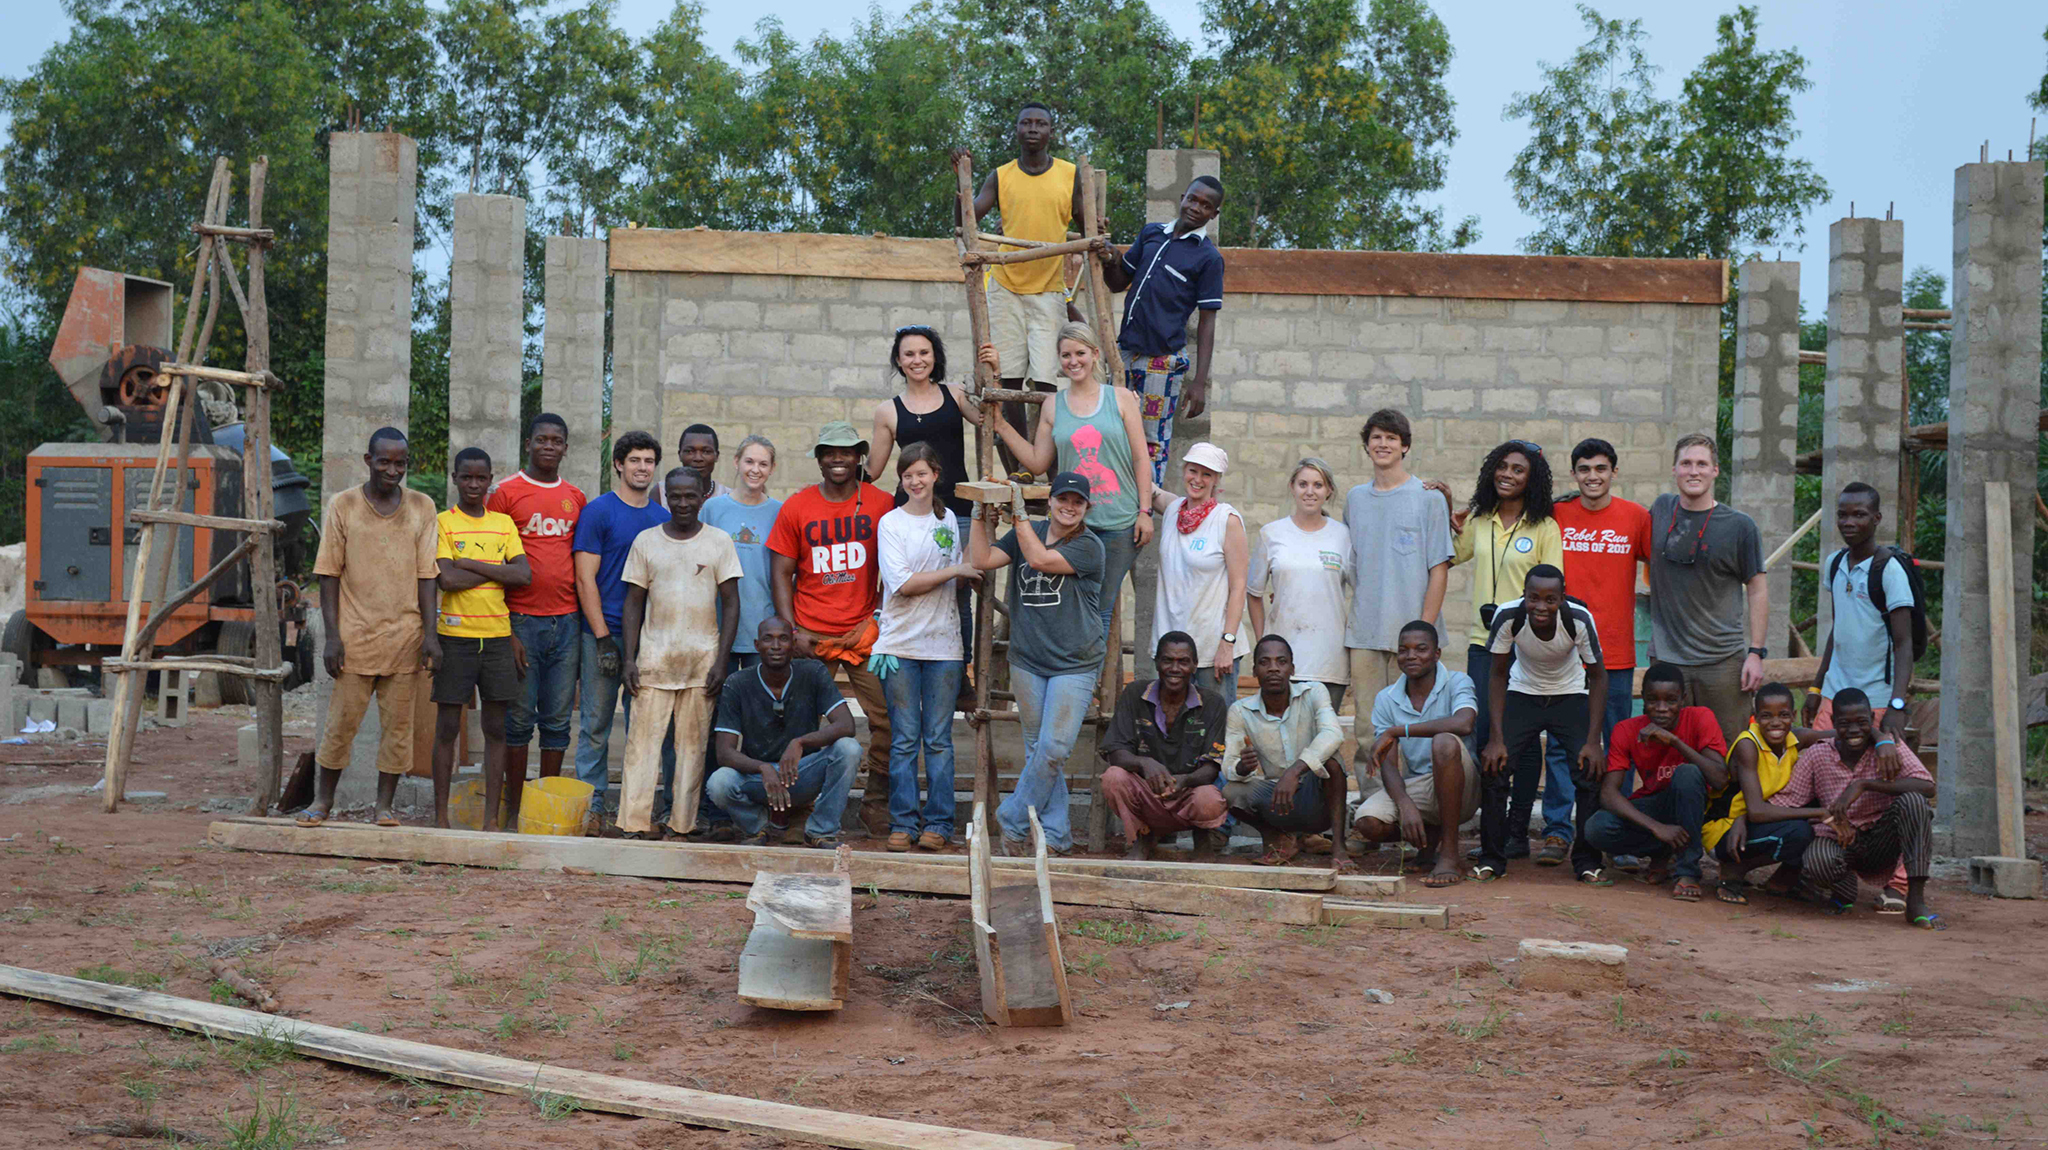 Engineers Without Borders - Ole Miss News